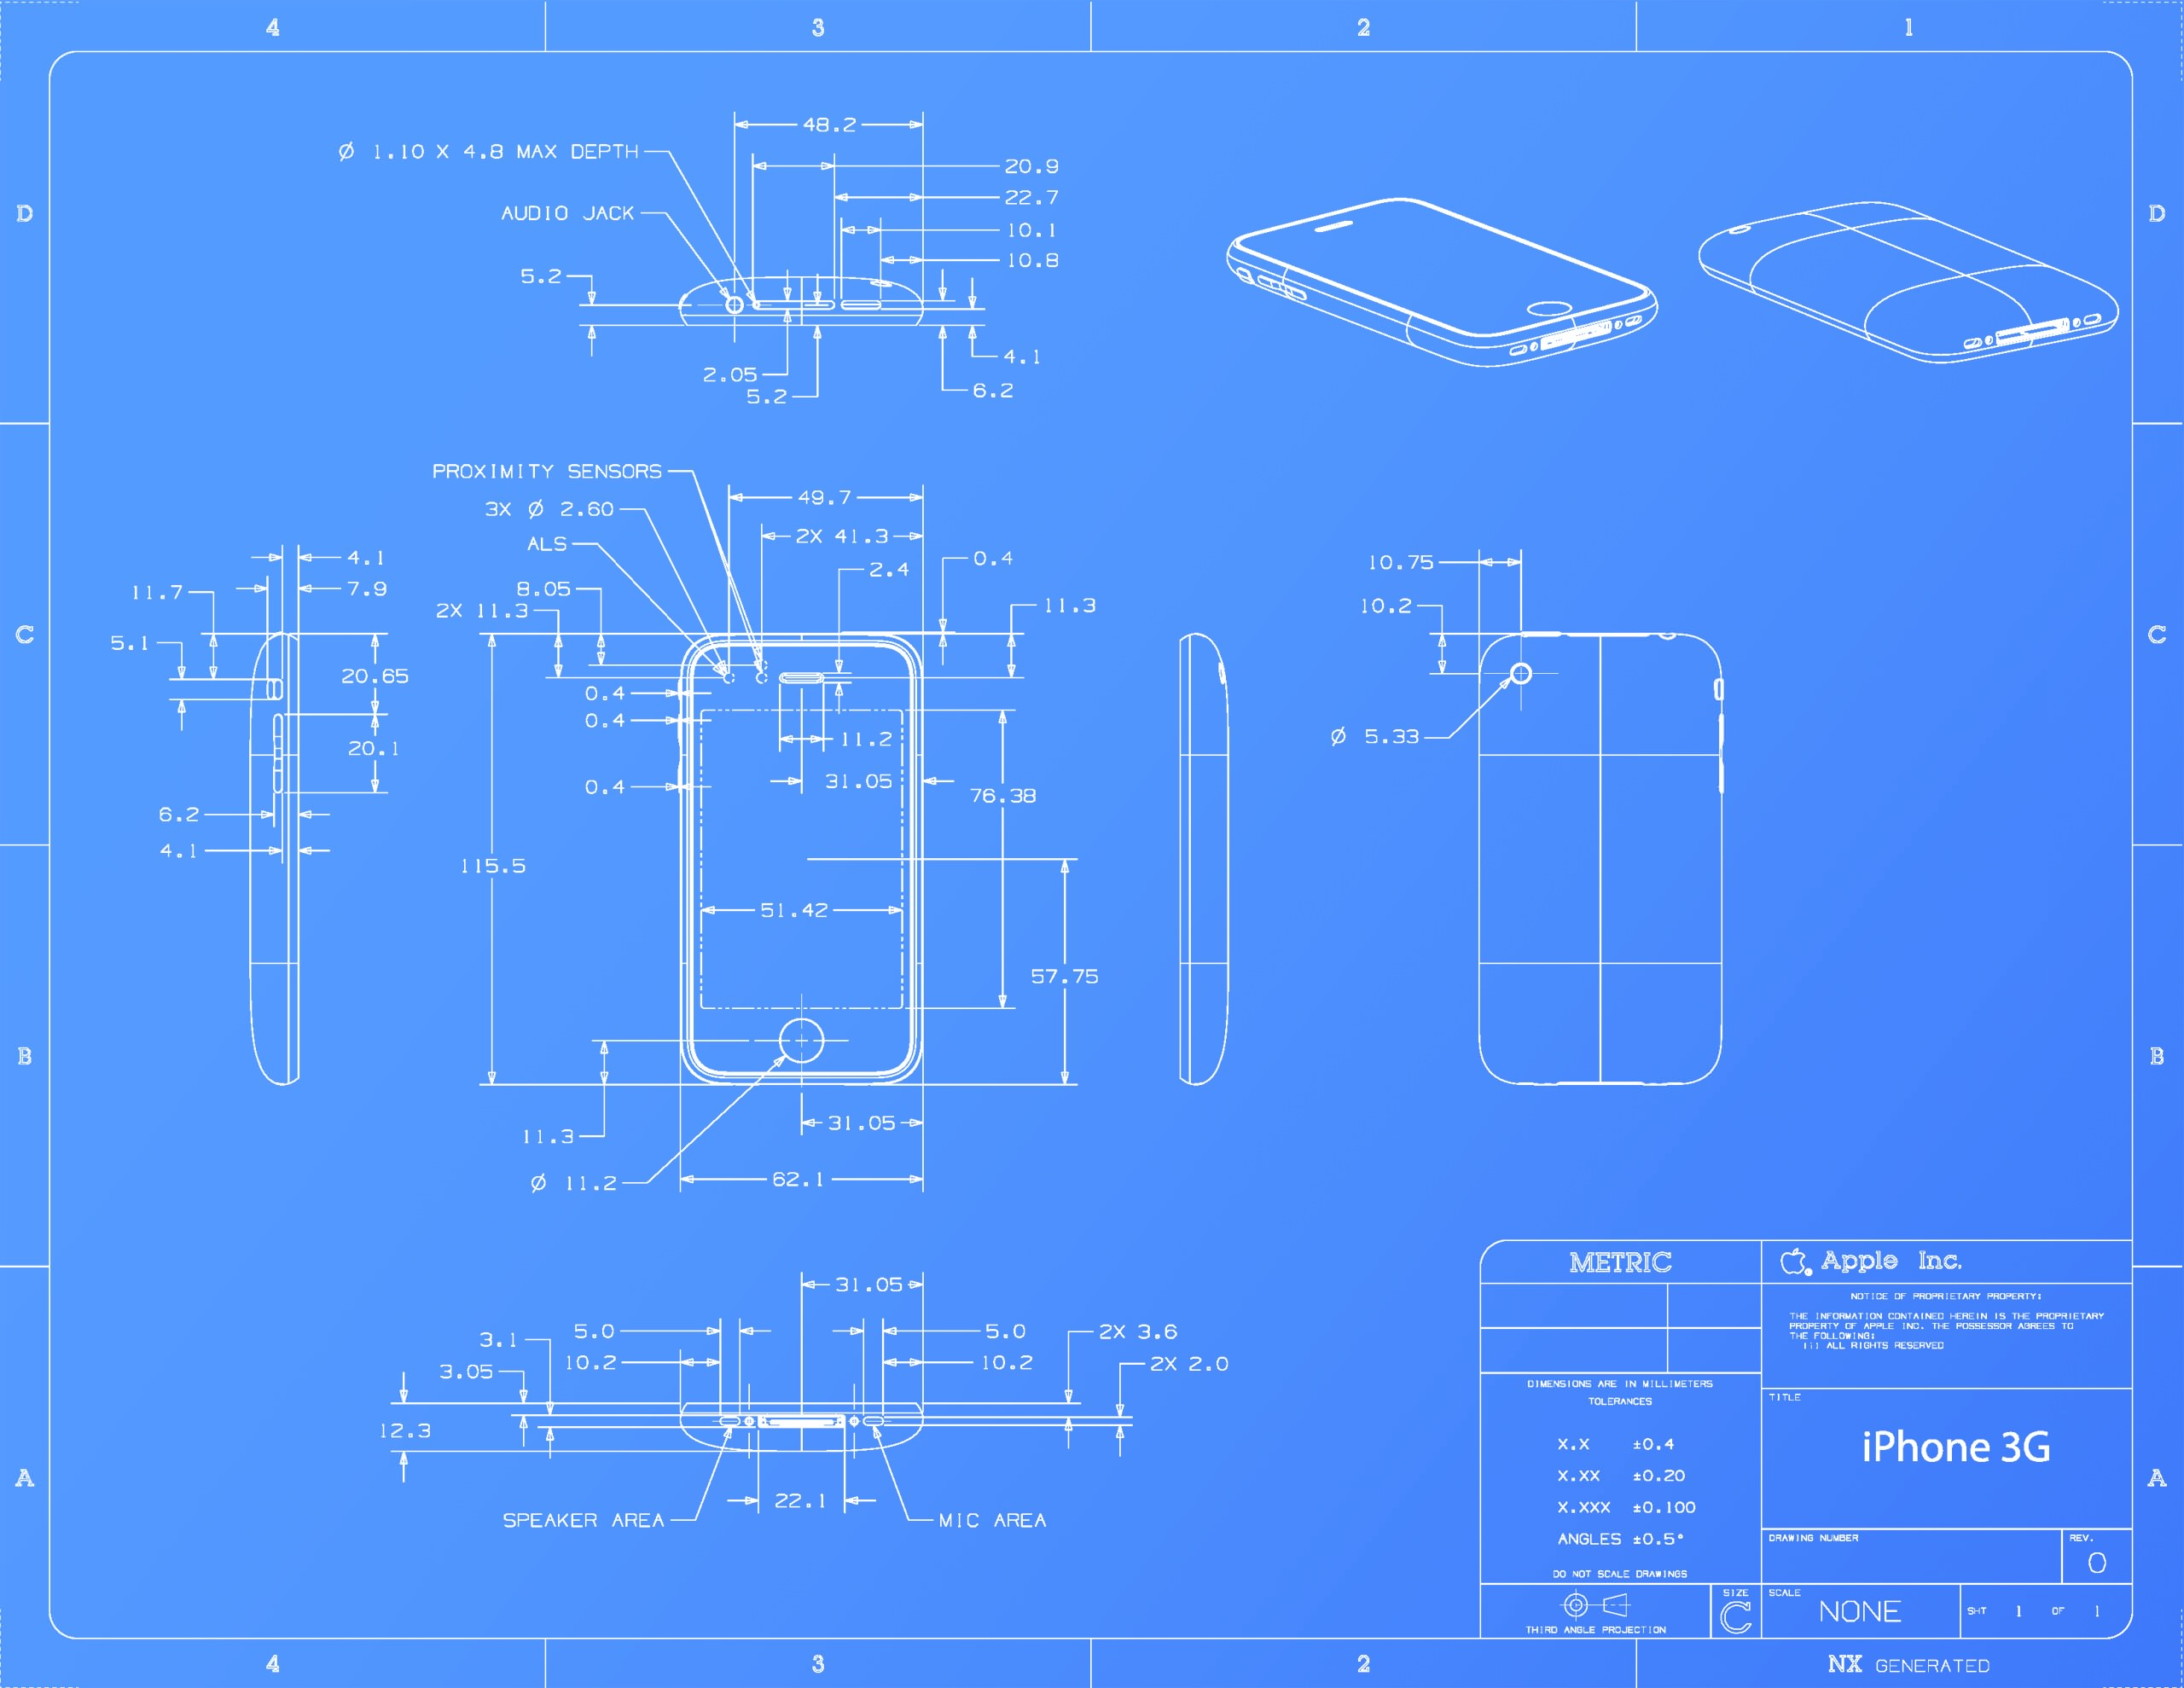 Iphone 3g blueprint wallpaper geekbench 4 numbers for the iphone 8 iphone 3g blueprint wallpaper malvernweather